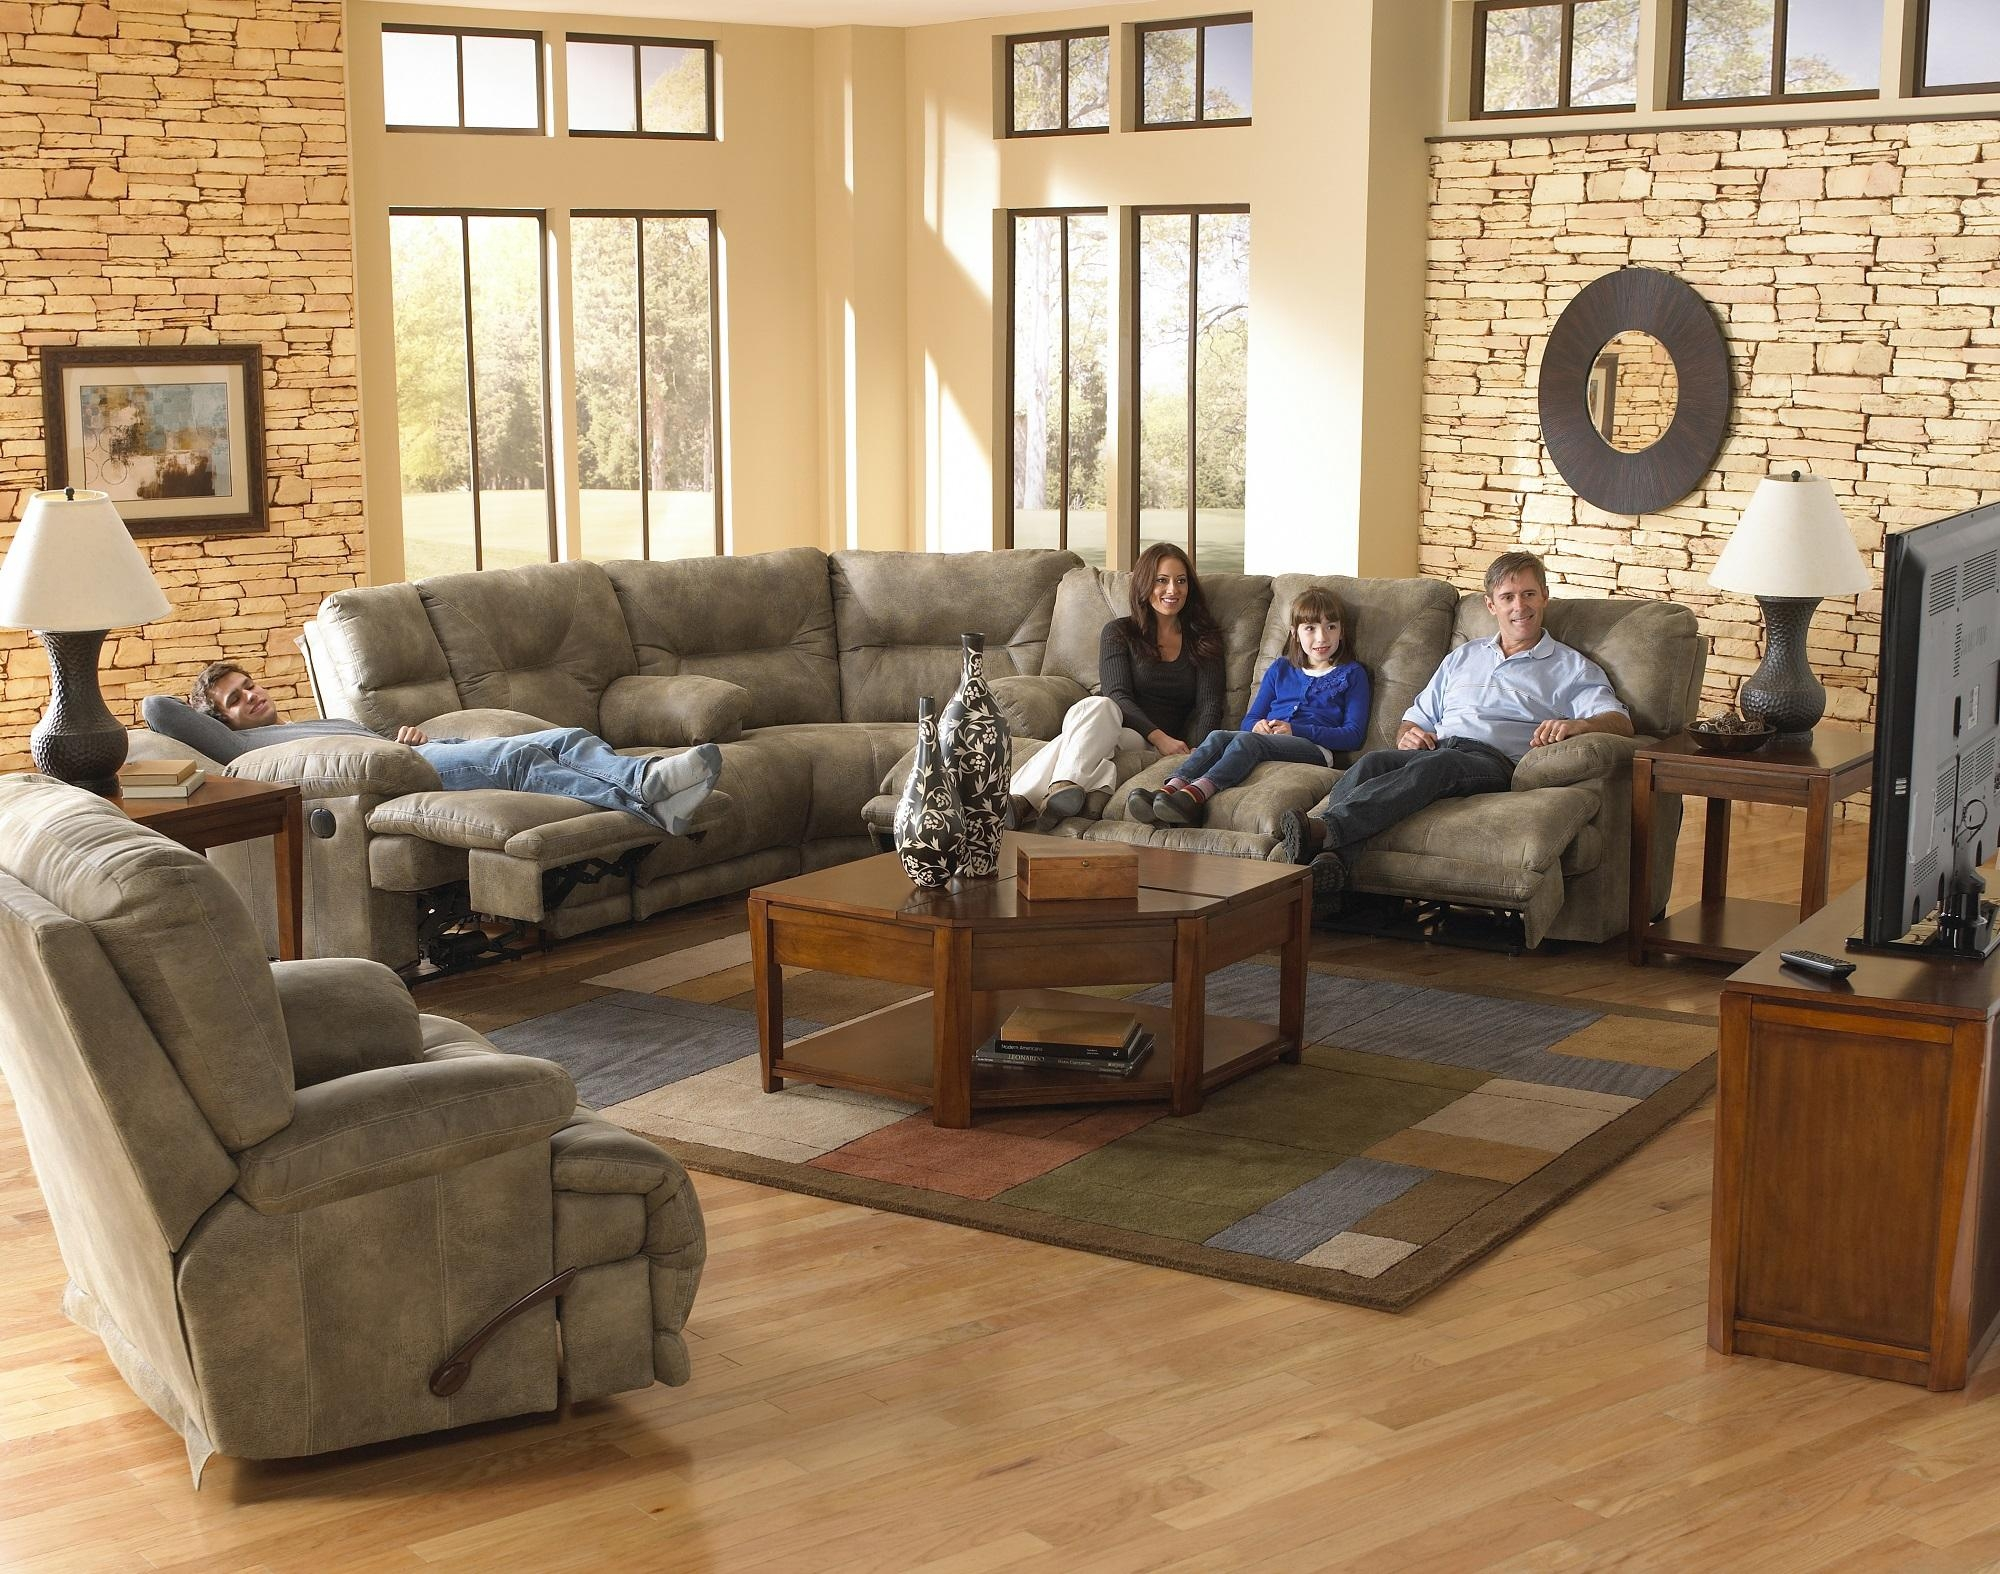 Voyager Power Reclining Sectional Sofacatnapper In Catnapper Recliner Sofas (View 3 of 20)